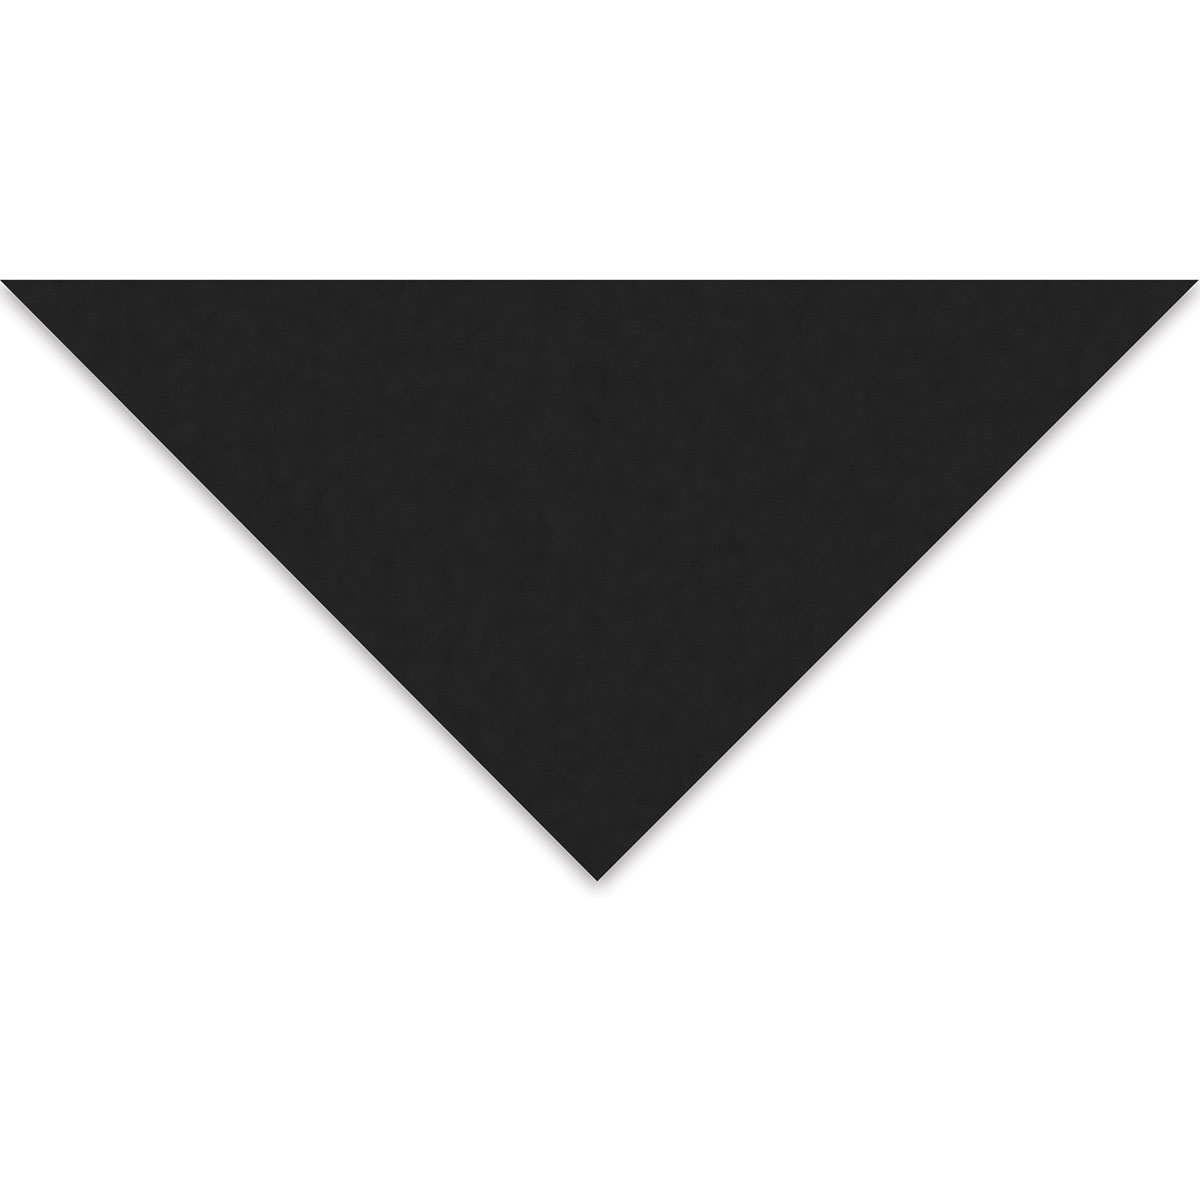 Strathmore Museum Mounting Board - 32 x 40 x 2-ply, Black